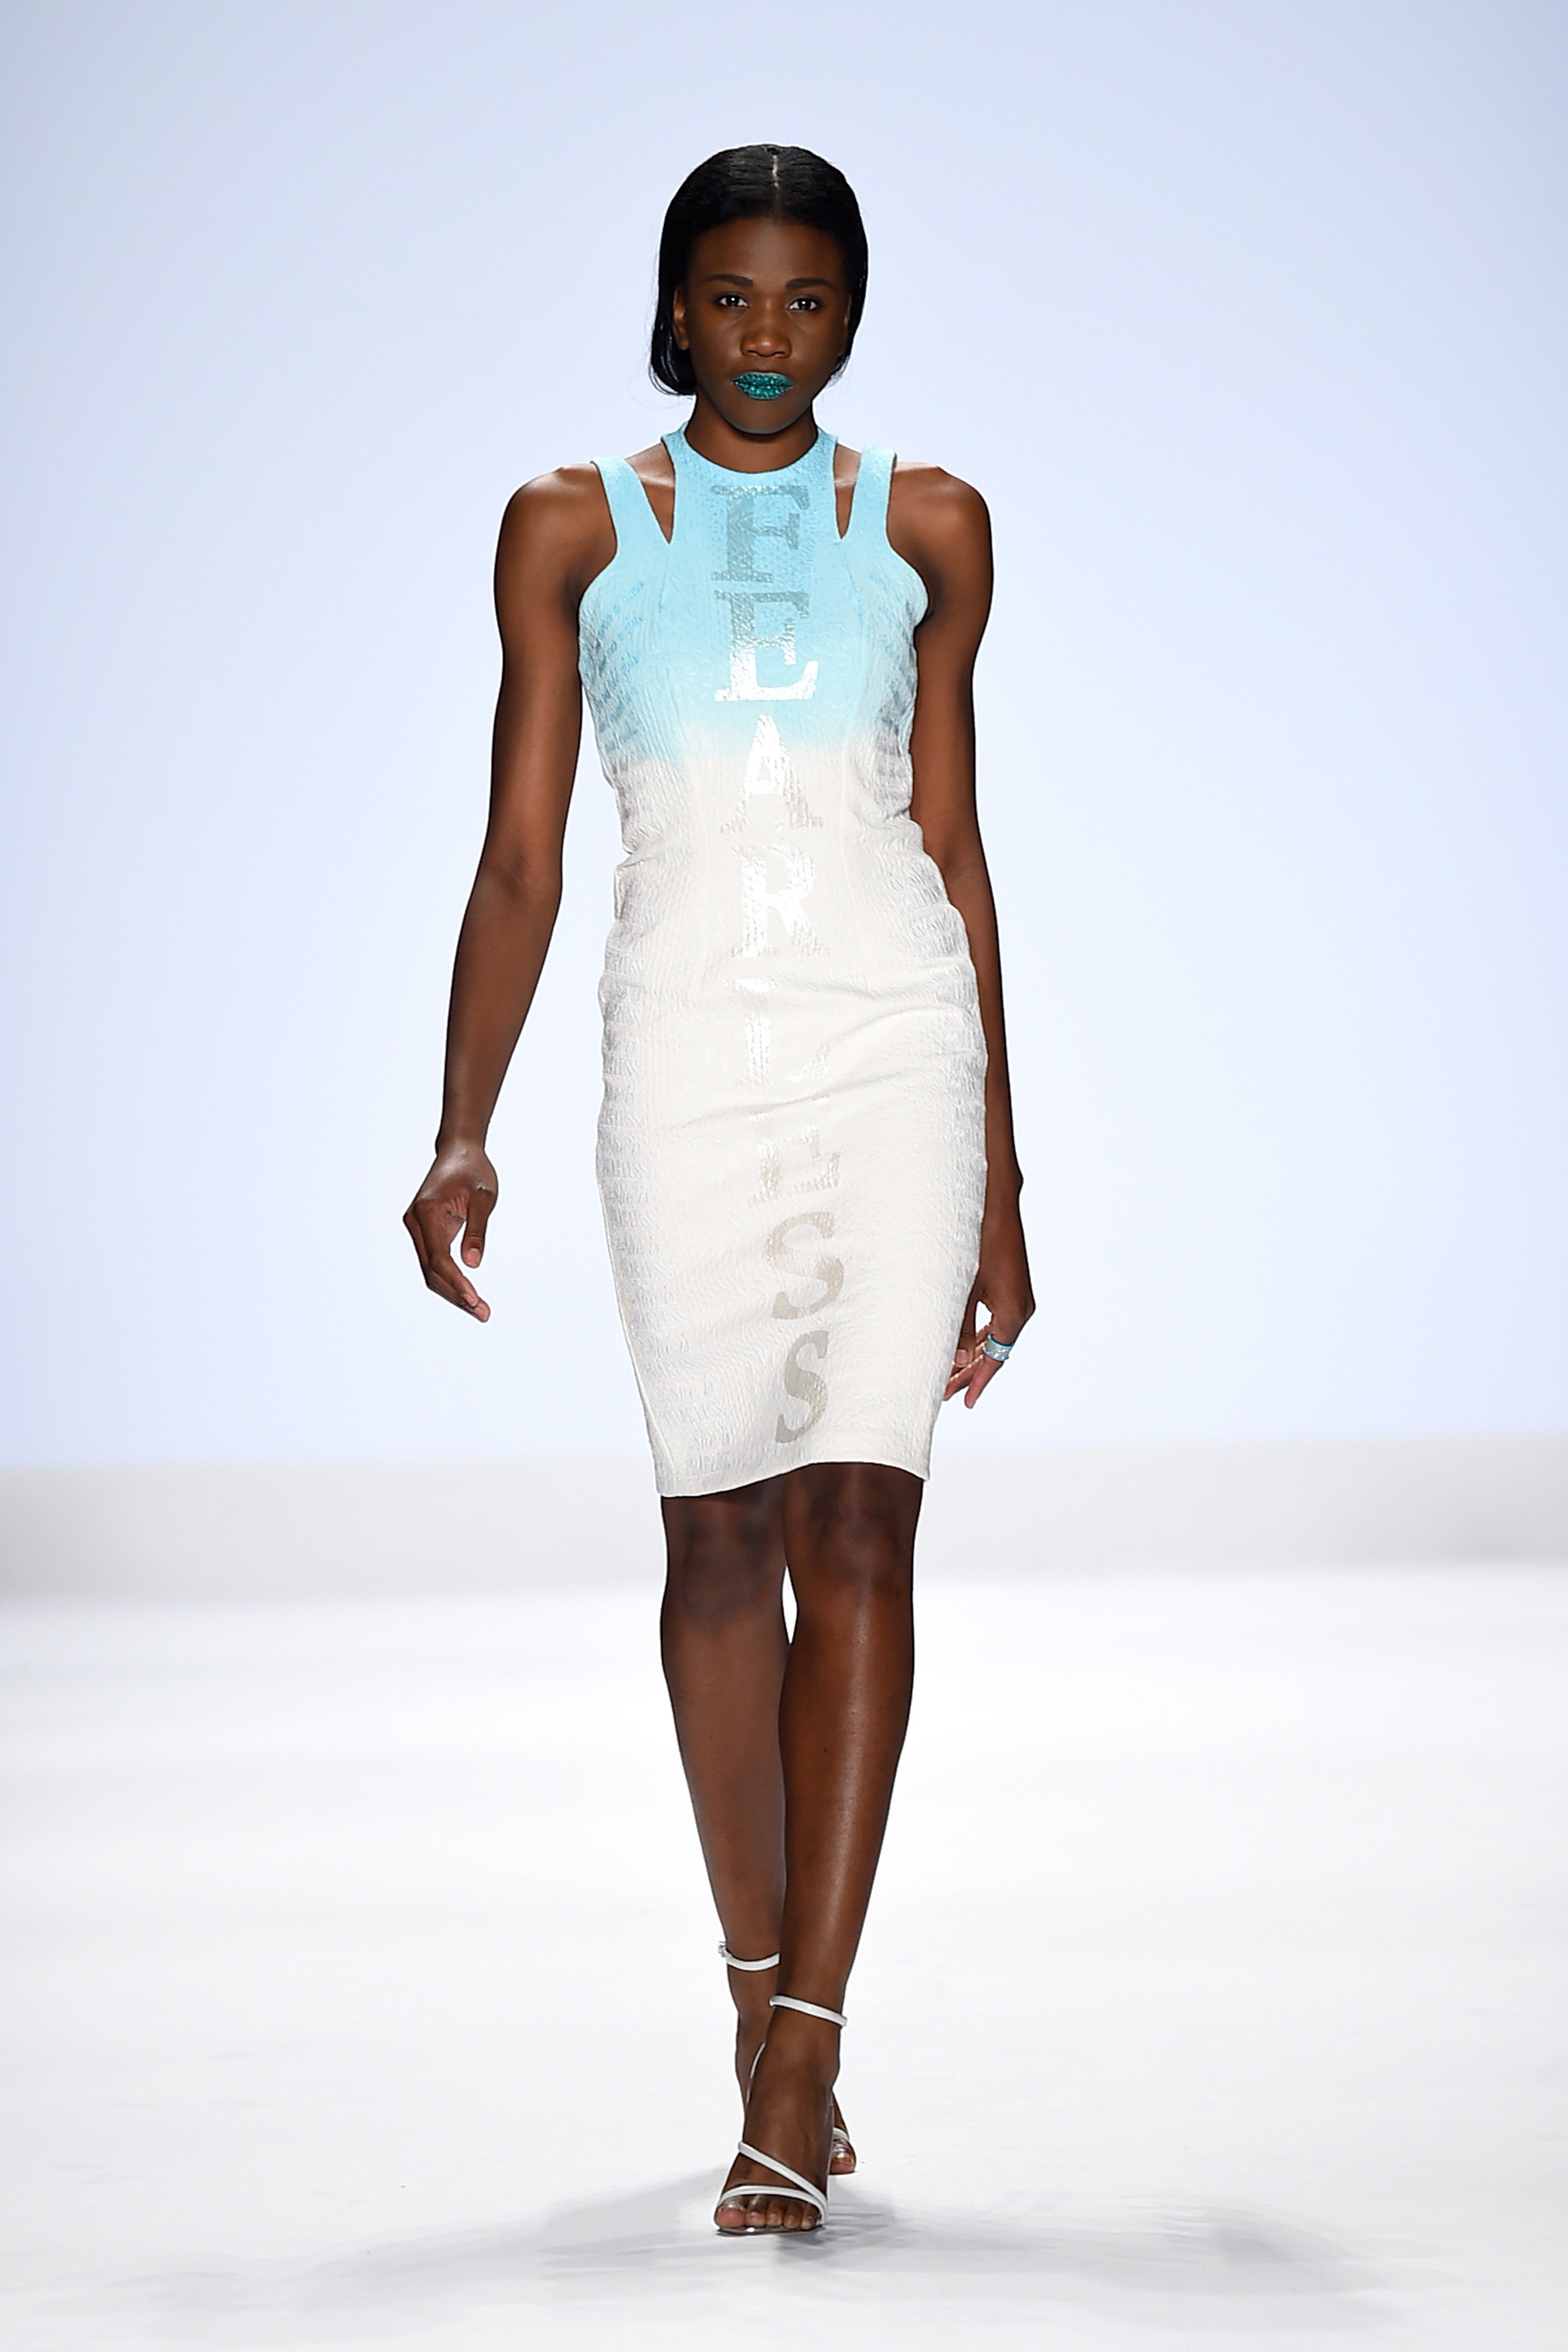 Project Runway's Fashion Week show 4